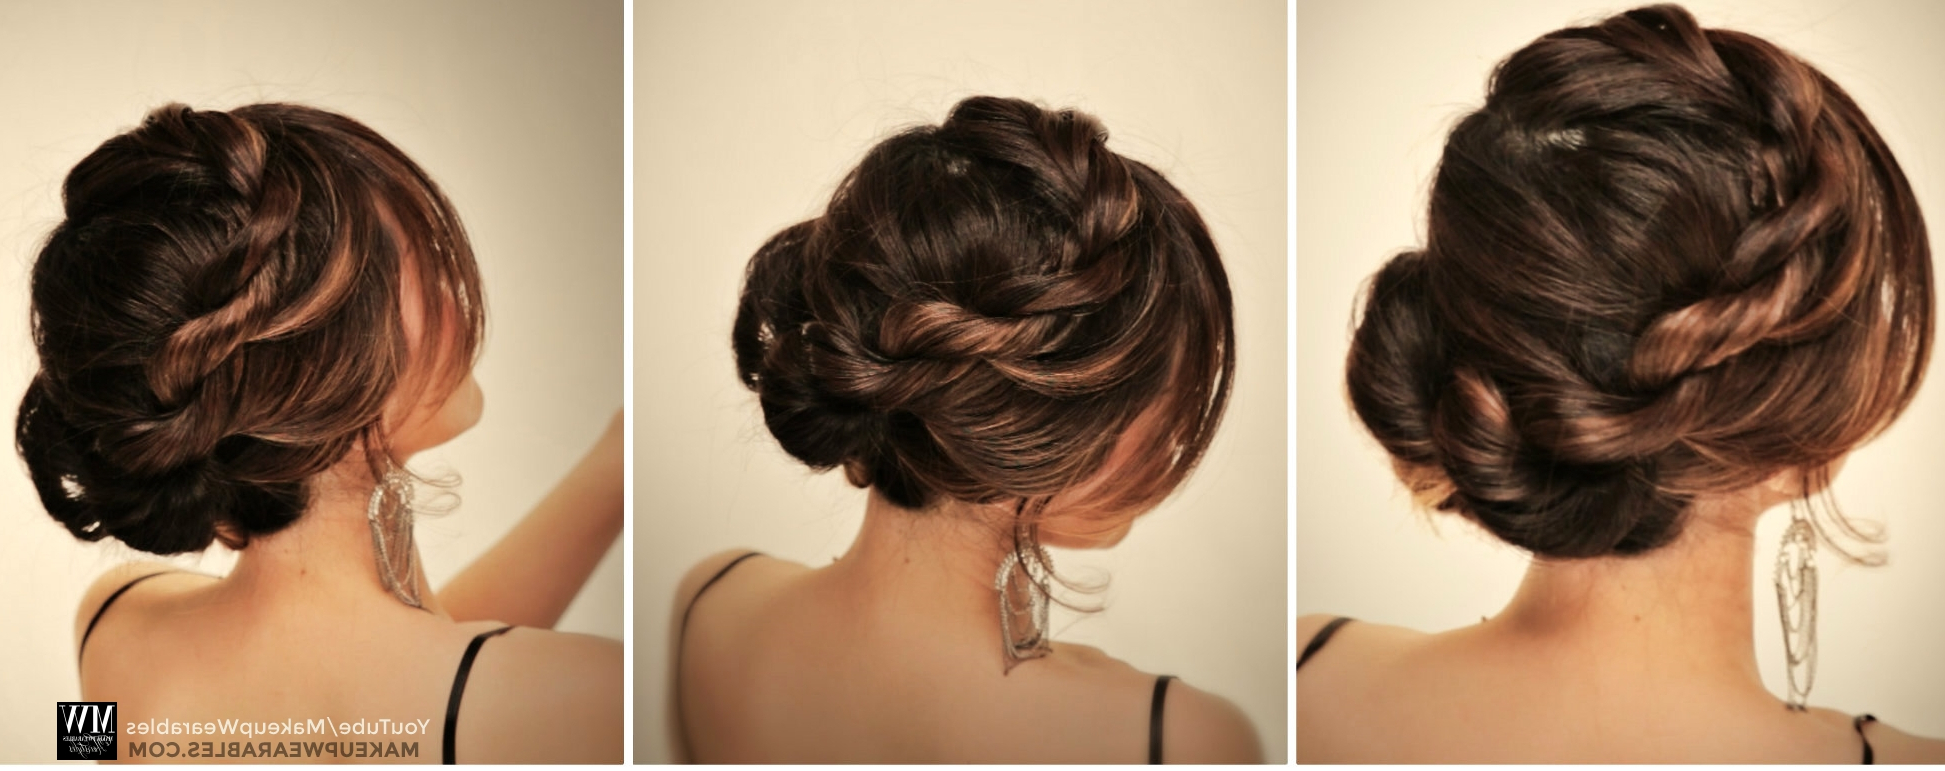 Popular Simple And Cute Wedding Hairstyles For Long Hair Intended For How To: 5 Amazingly Cute + Easy Hairstyles With A Simple Twist (View 16 of 20)